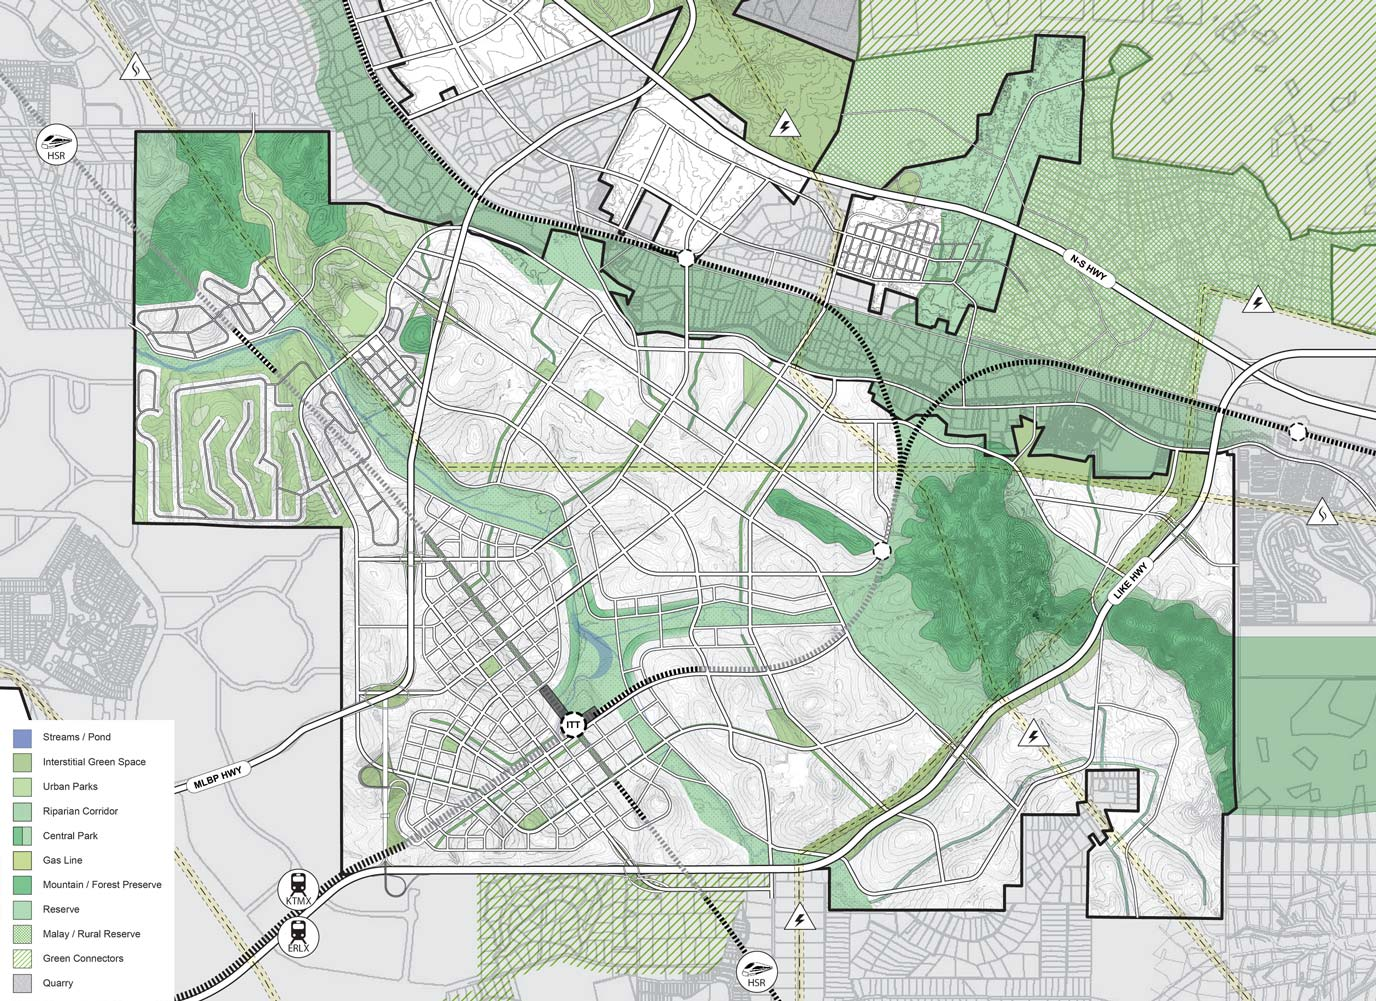 Malaysia-Vision-Valley_Open-Space_Parcel-B_Master-Planning_Klopfer-Martin.jpg